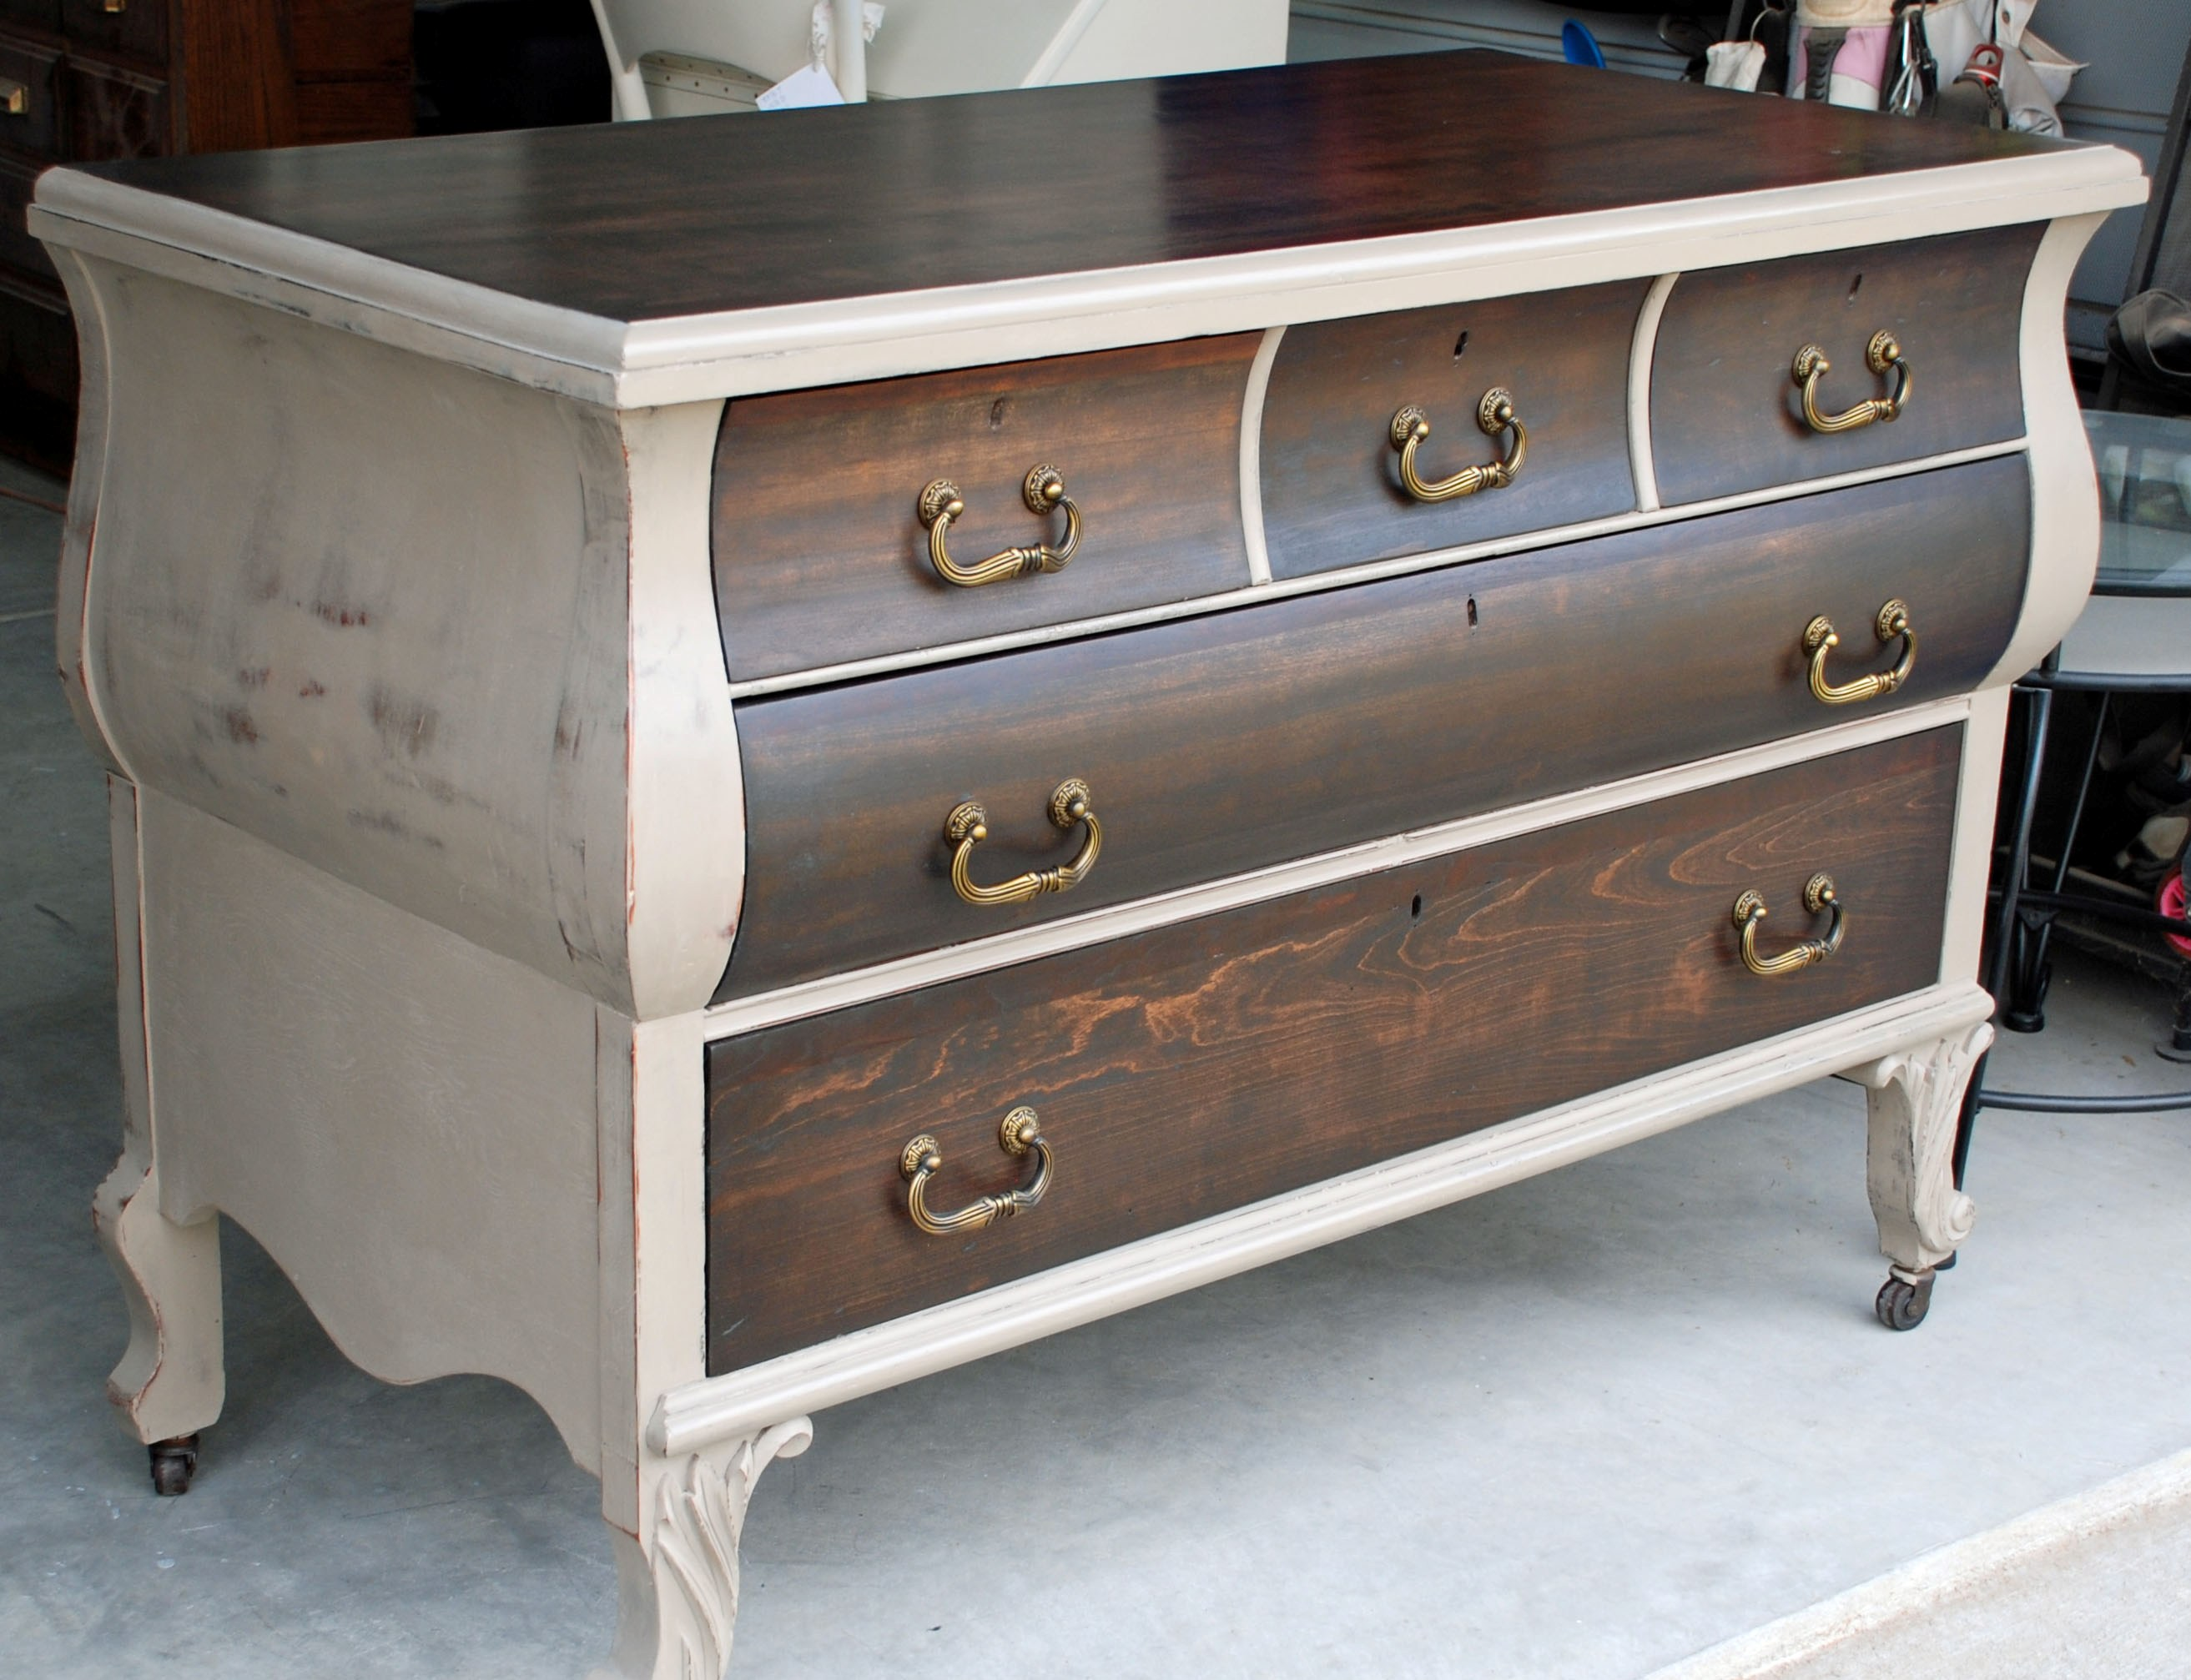 Painted Furniture Painting Furniture Designs